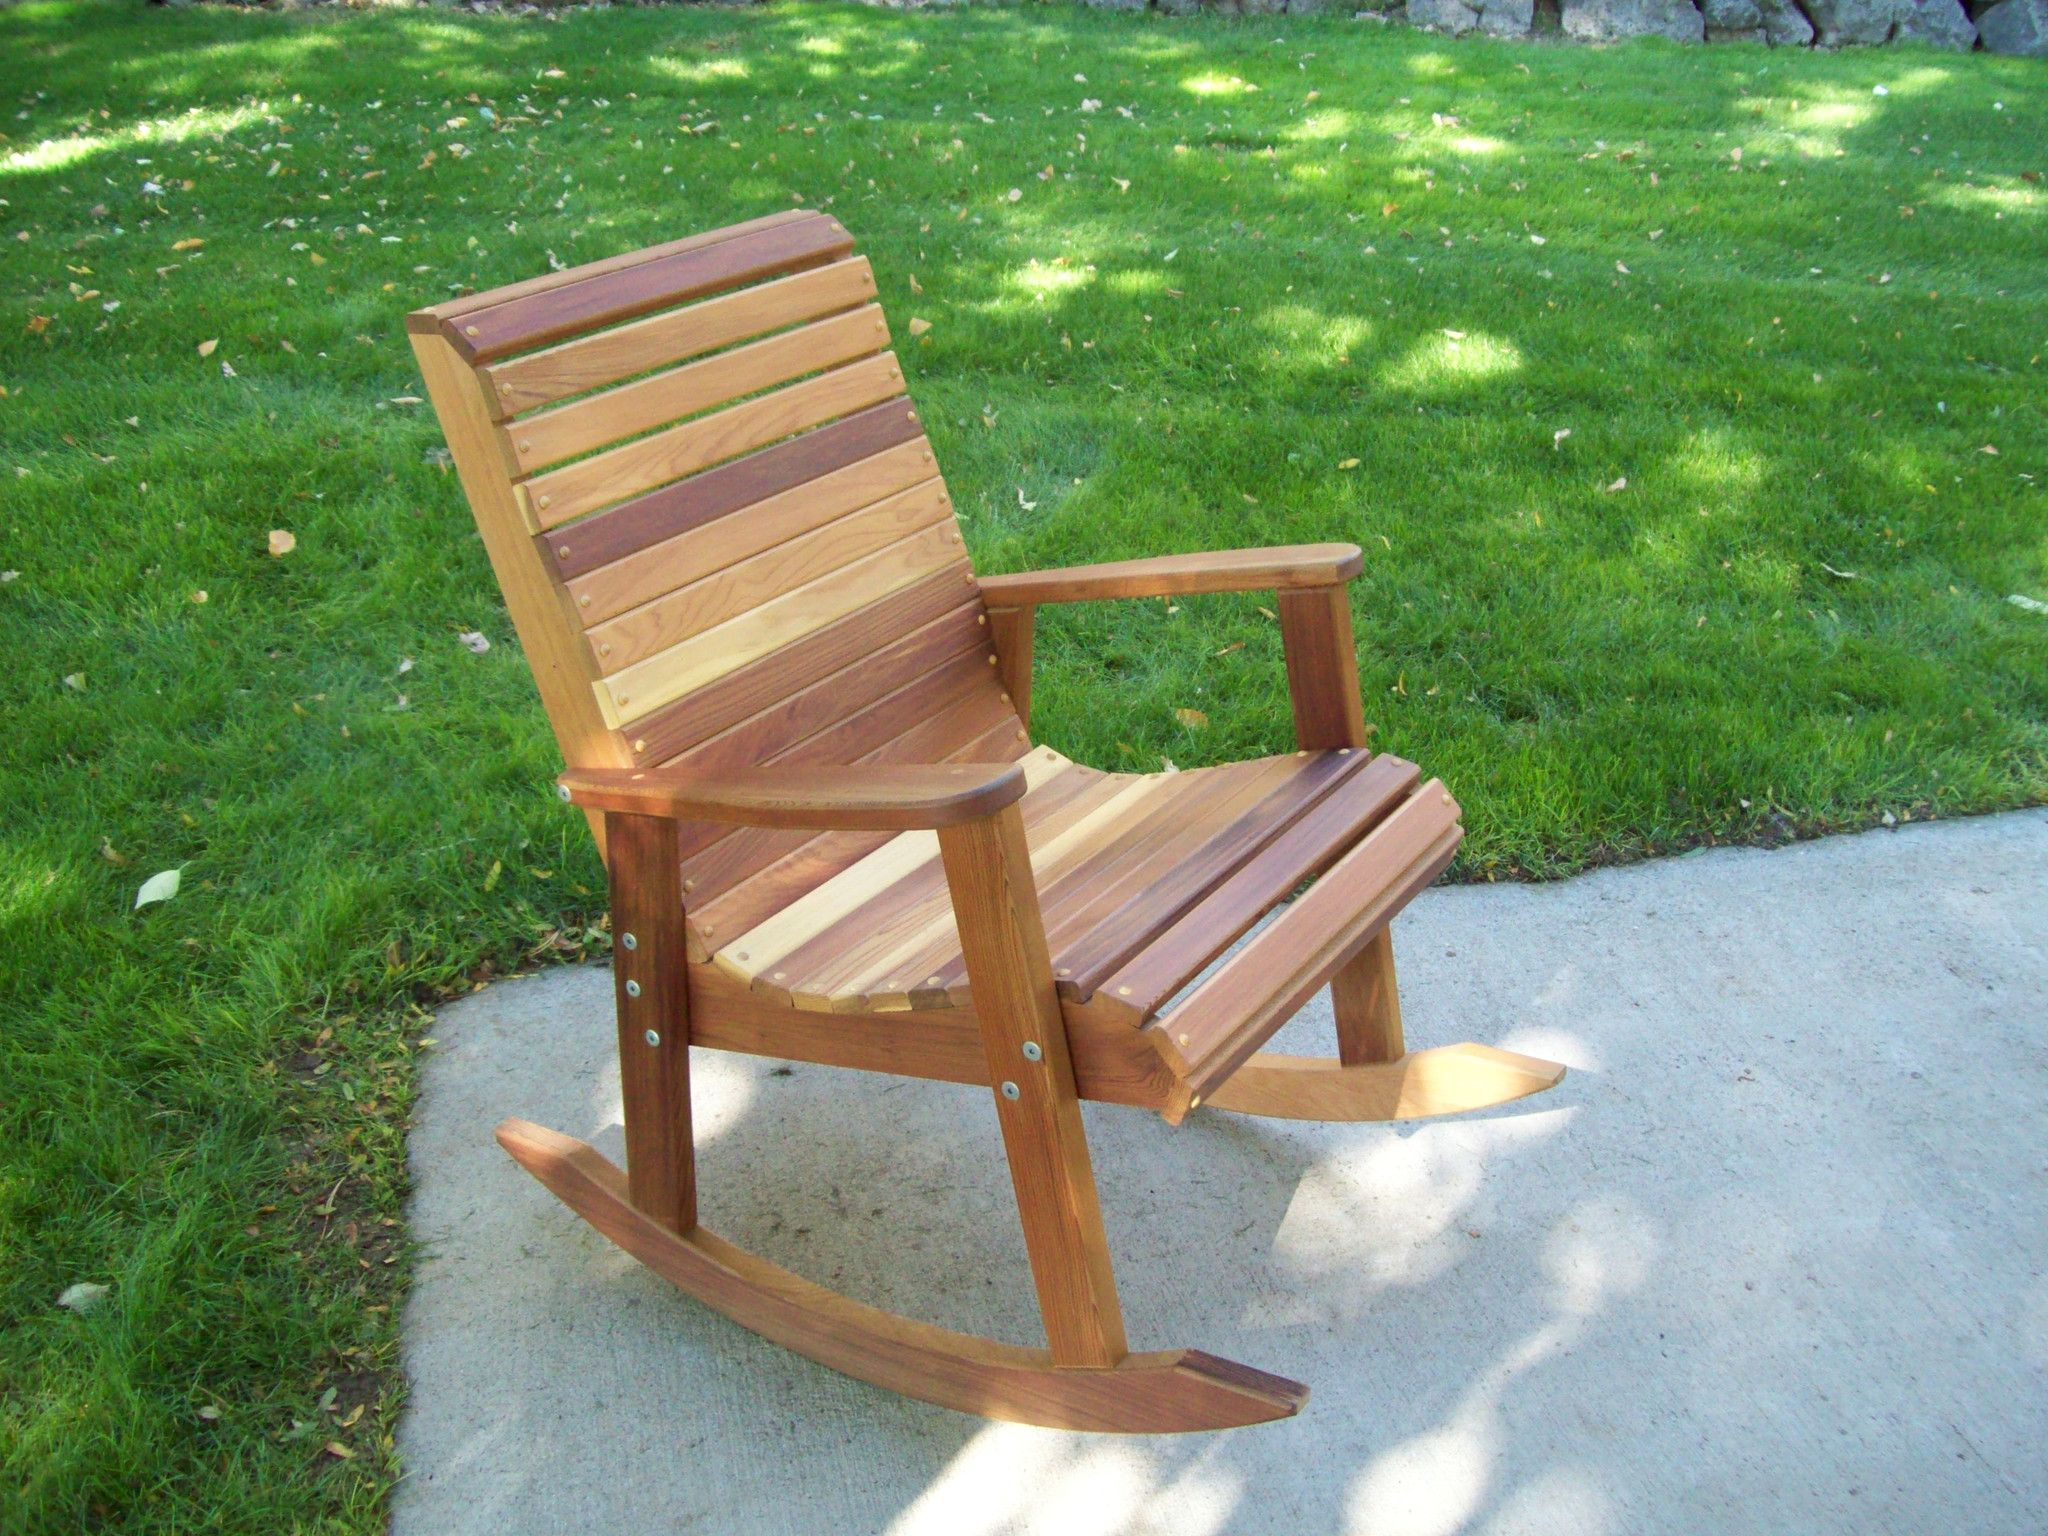 Wood Country T&L Red Cedar Rocking Chair Rocking chair